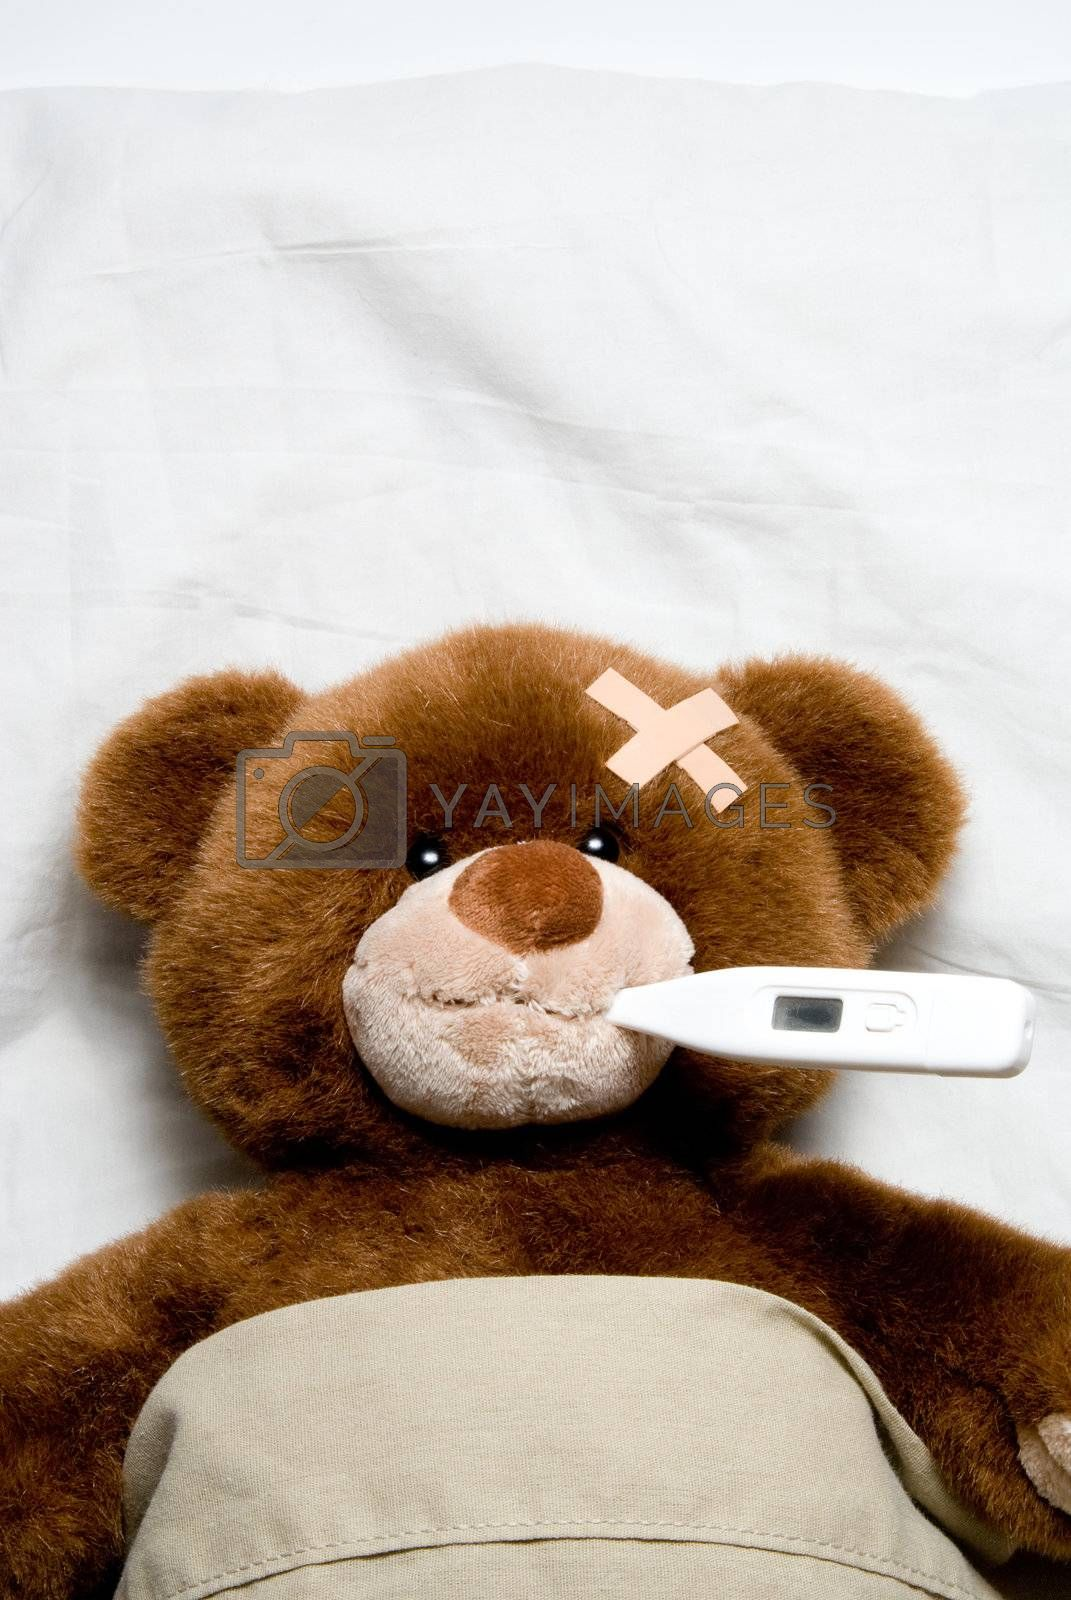 A very Sick Teddy Bear laying in a bed.